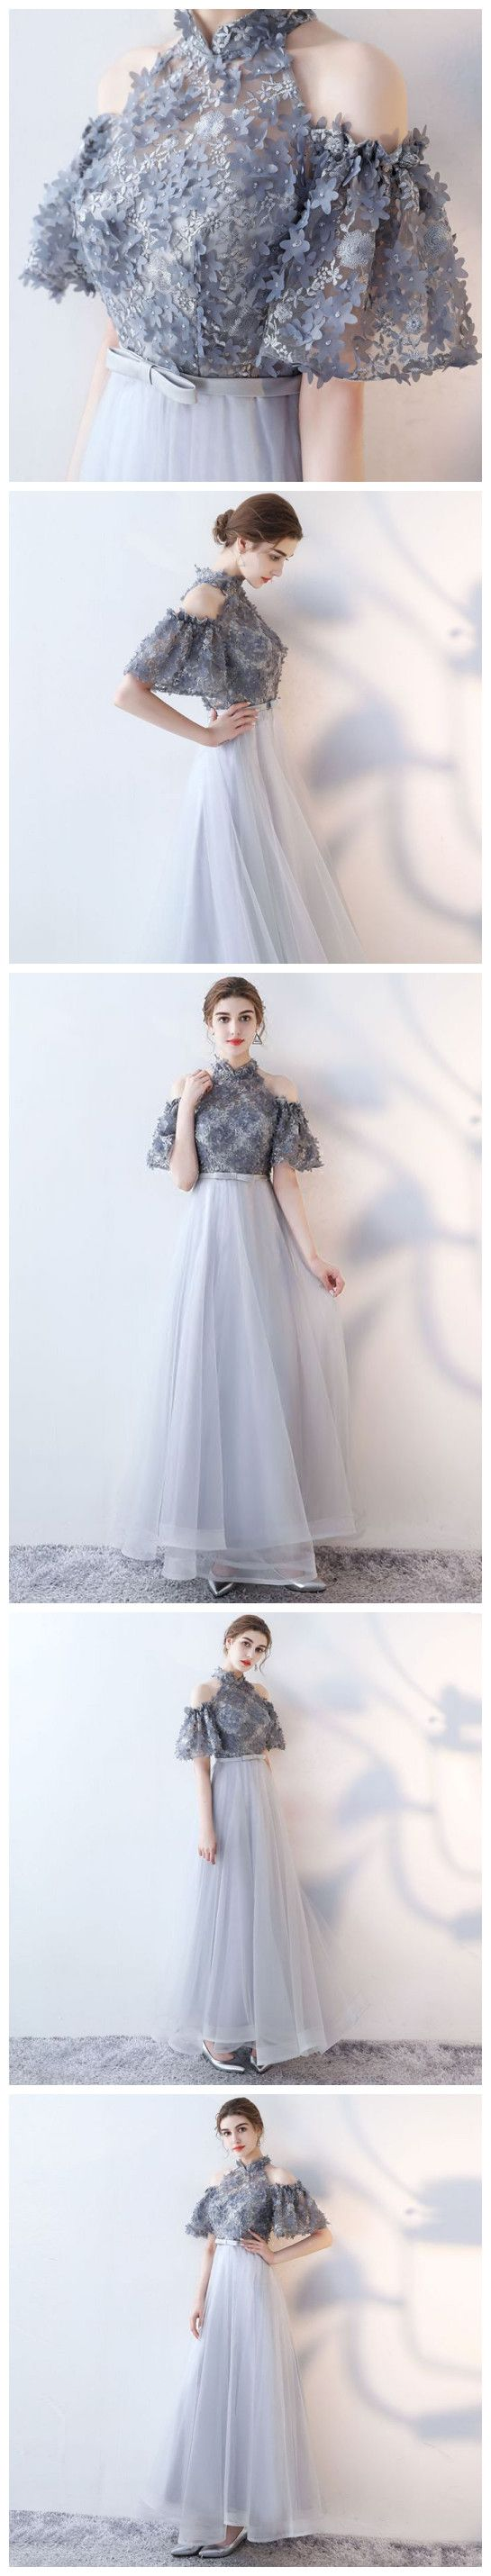 c55d66b53b CHIC A-LINE HIGH NECK TULLE APPLIQUE MODEST LONG PROM DRESS EVENING DRESS  AM749  amyprom  fashion  party  evening  chic  promdress  promdresslong ...